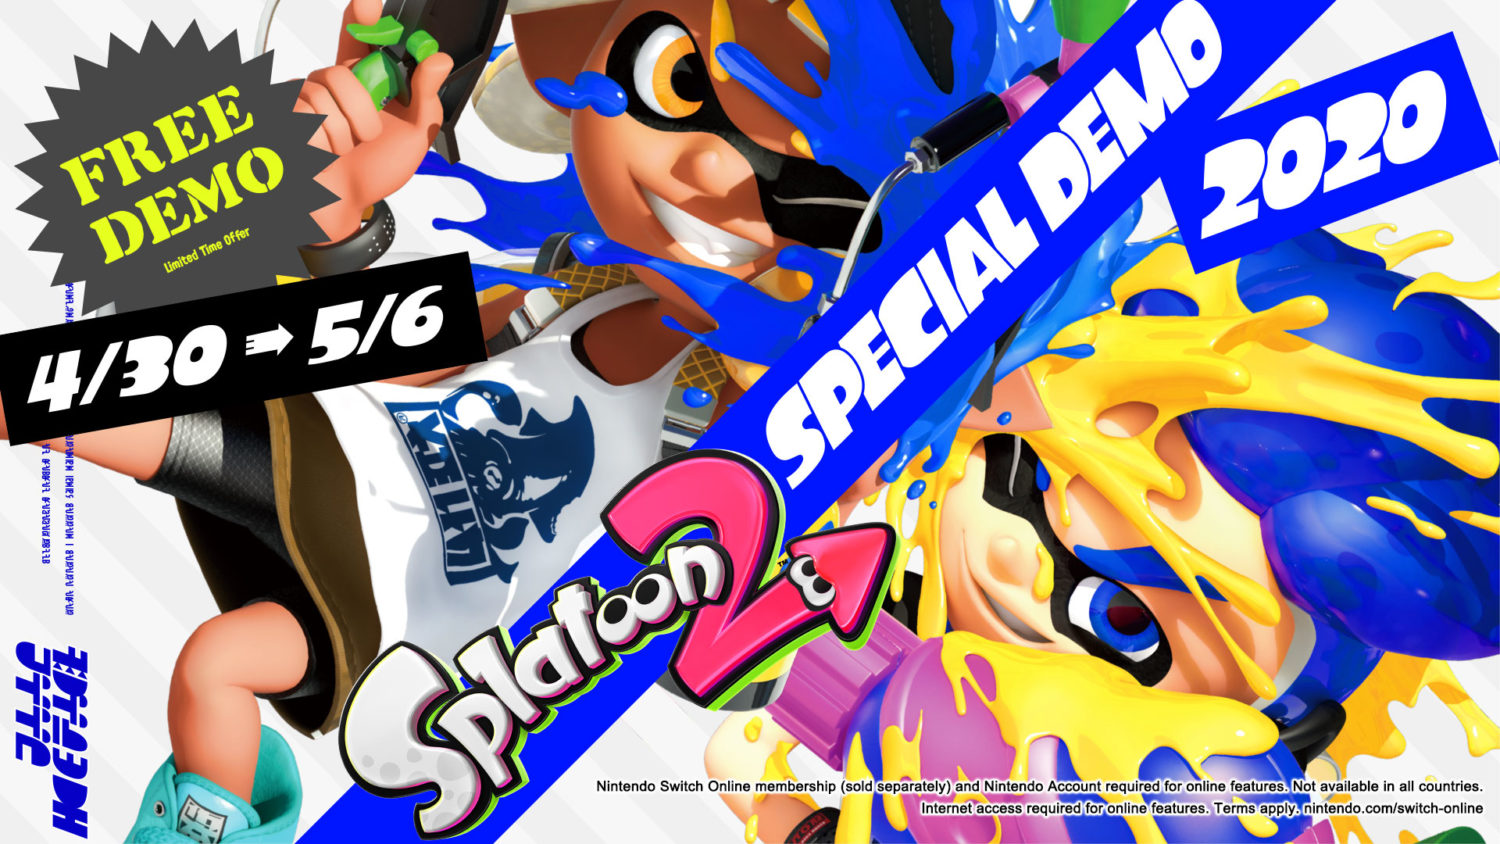 Splatoon 2 special demo 2020 - Nintendo Switch eShop